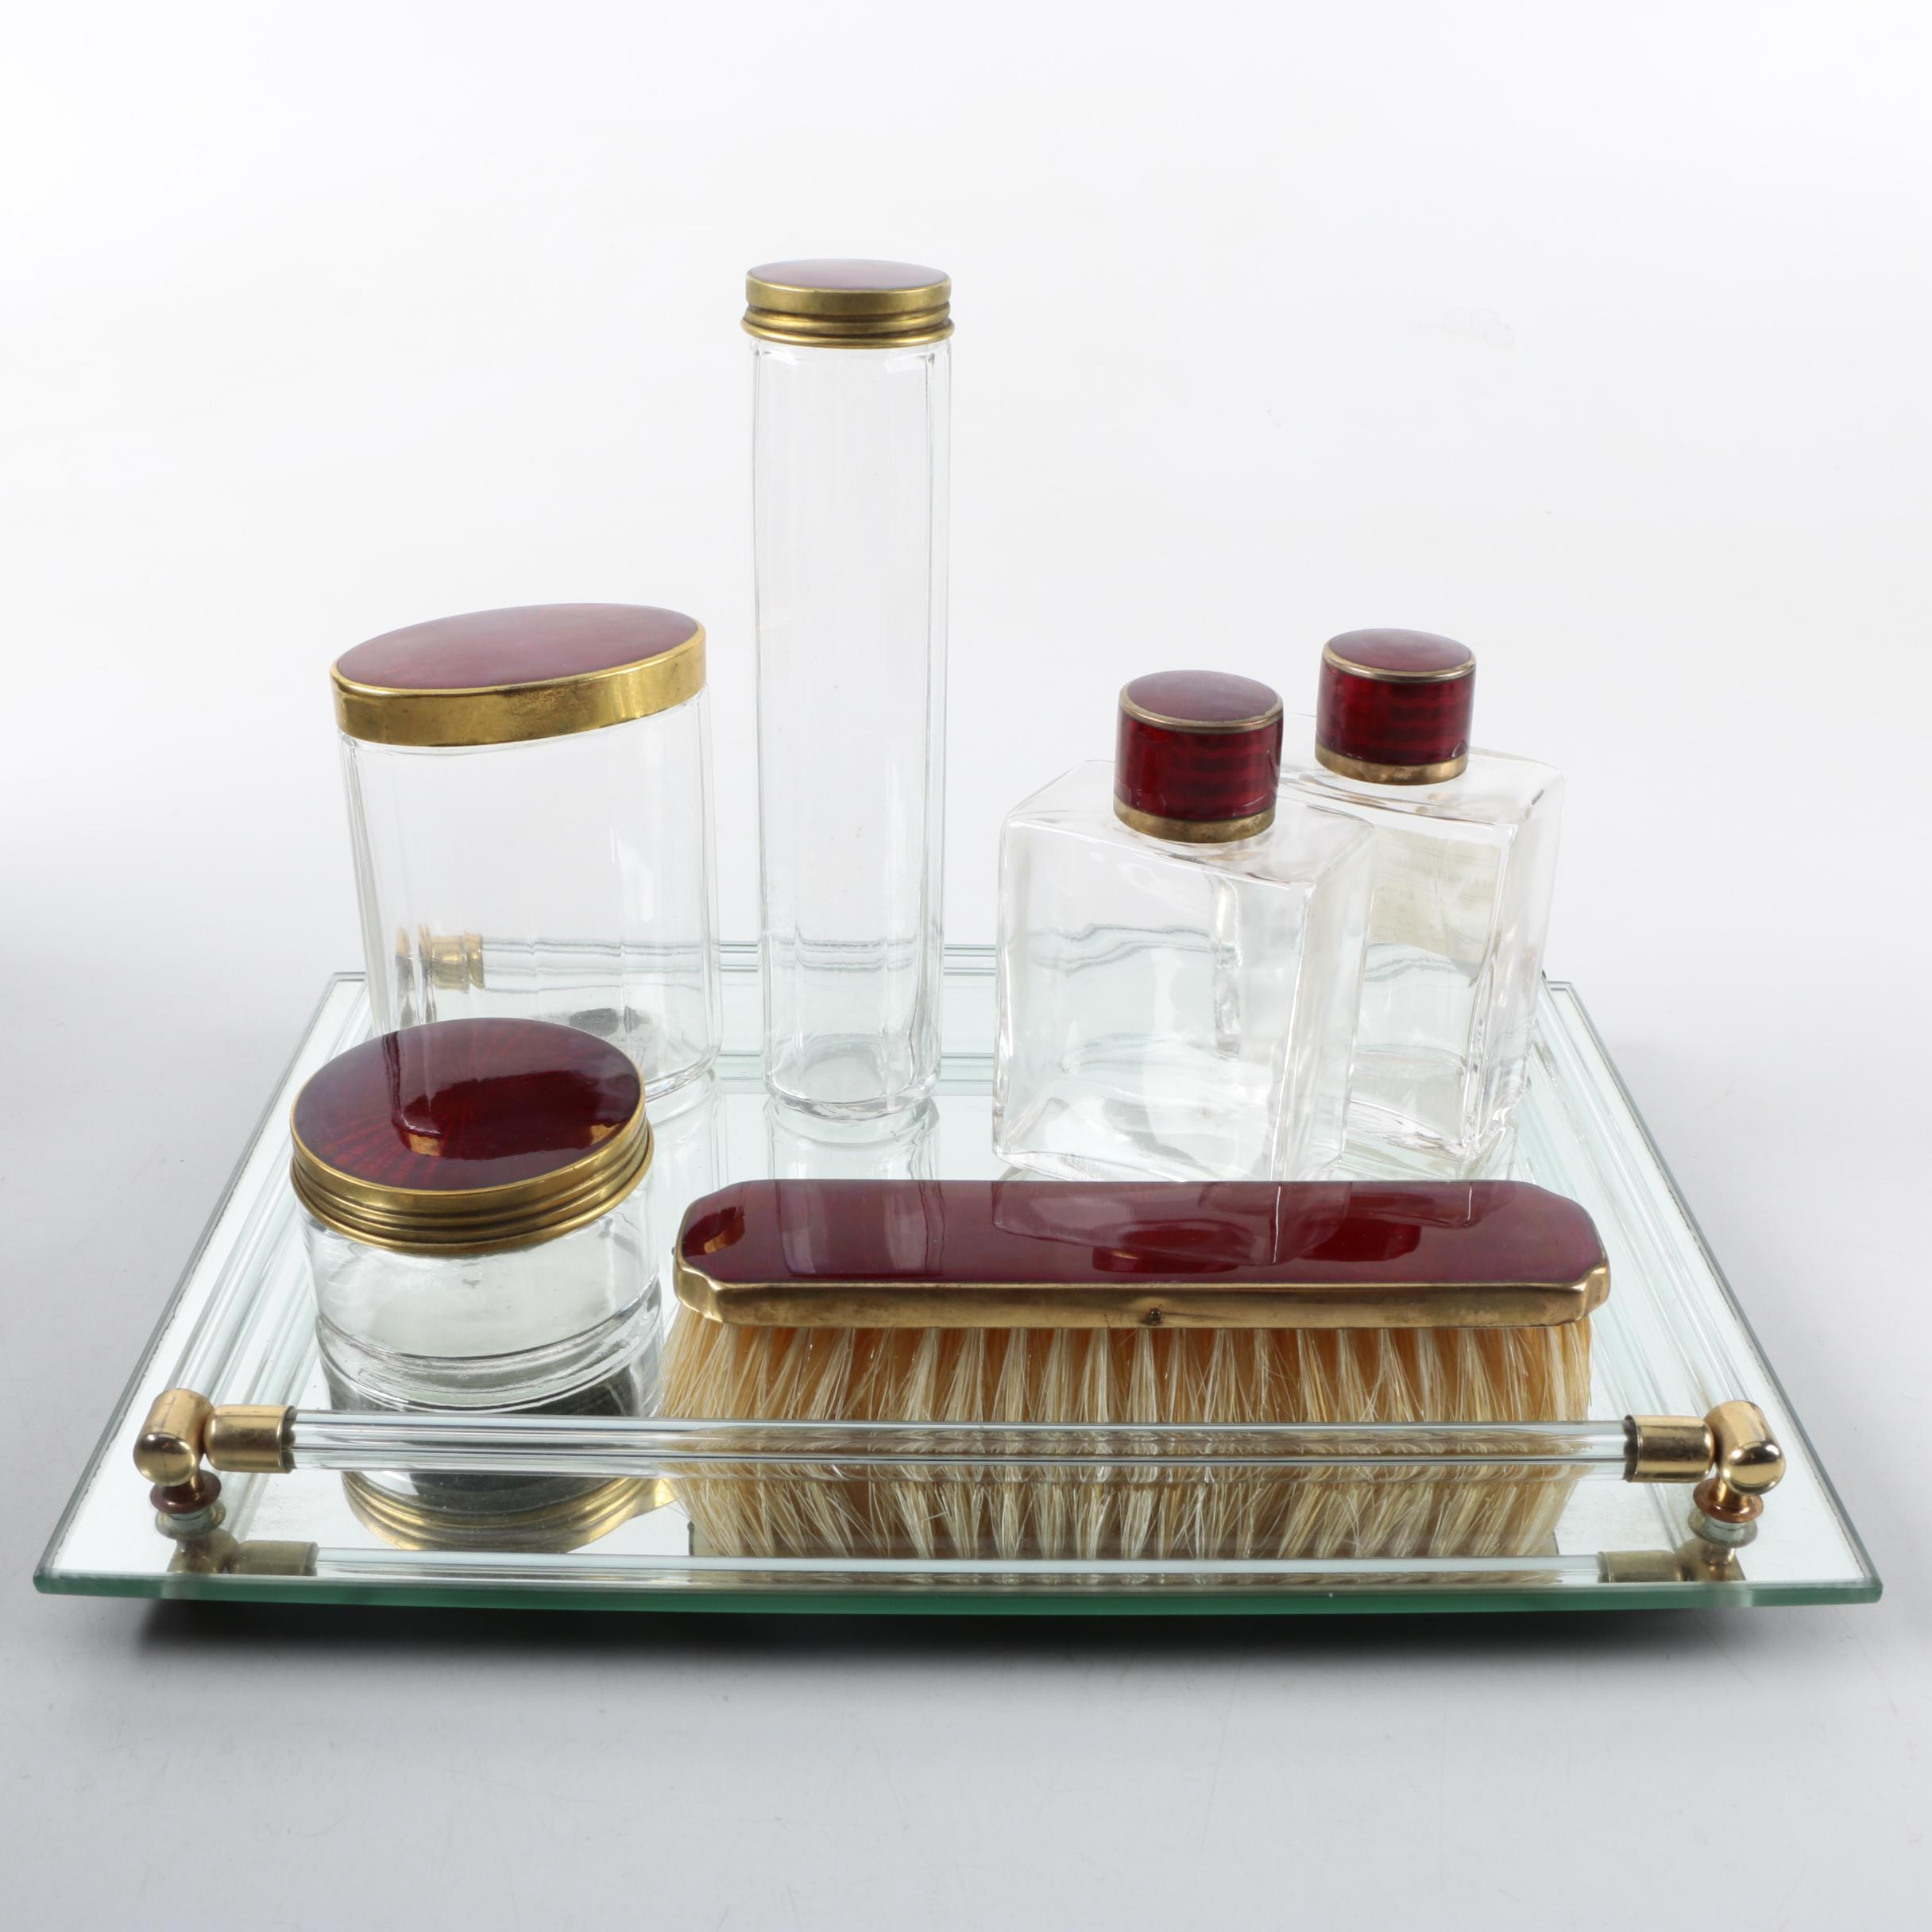 Art Deco Red Guilloche Enamel Glass Vanity Set on Mirrored Tray